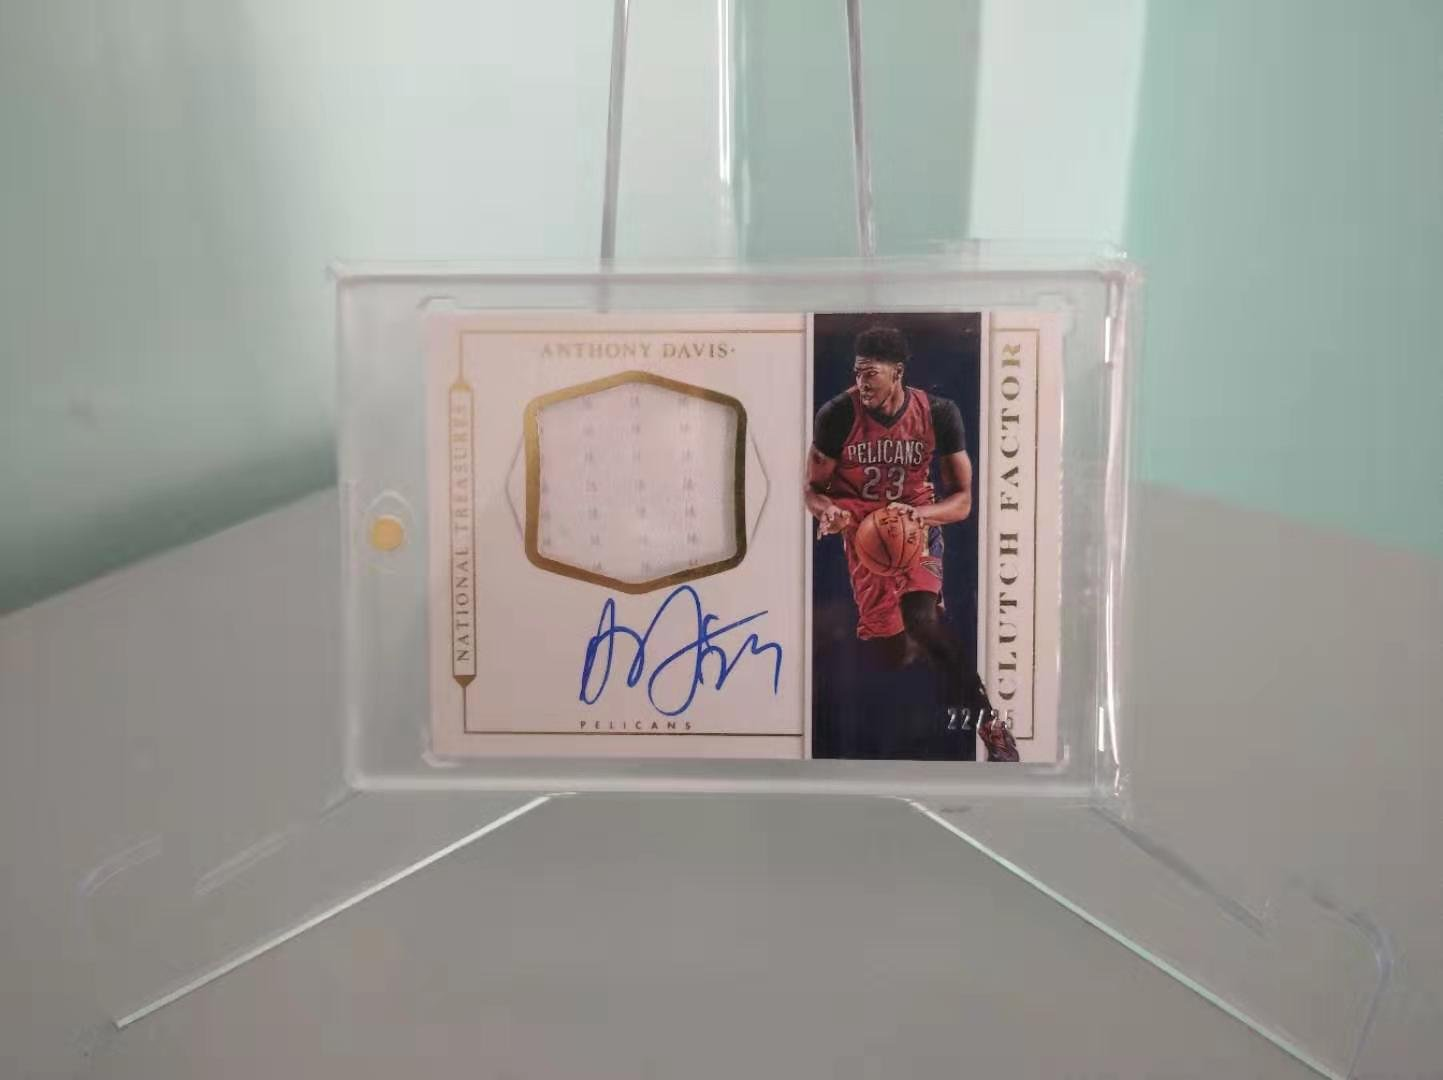 2015-16 Panini National Treasures ANTHONY DAVIS Trading Card #/25 Game Worn Patch